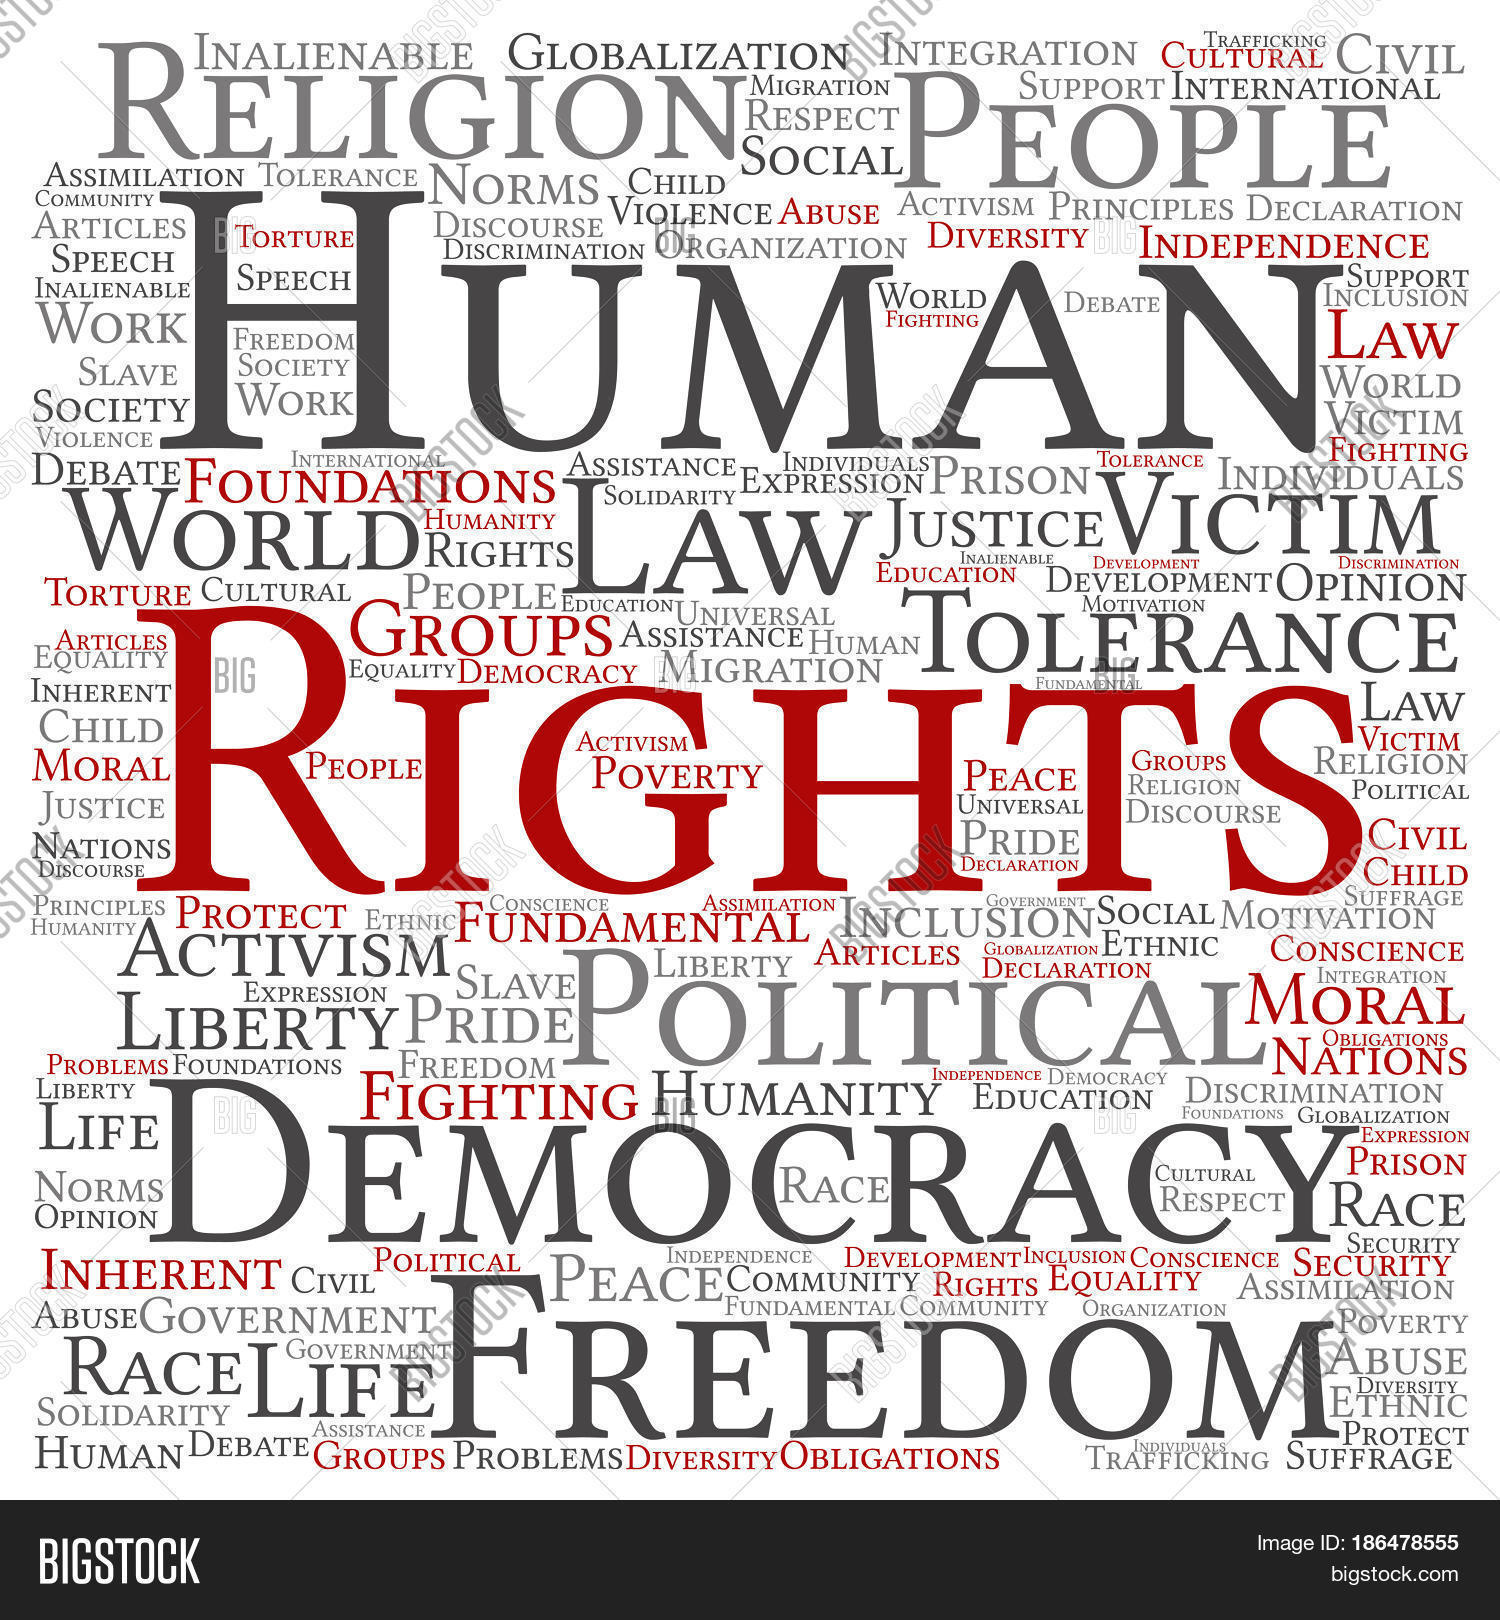 human rights under democracy Introduction there is something counterintuitive about imposing democracy on peoples in the recent debate in political and legal philosophy, many have argued against the human right to democracy, often on grounds of its conflict with another right, the right to self-determination (eg cohen 2006 lister 2012 reidy 2012).